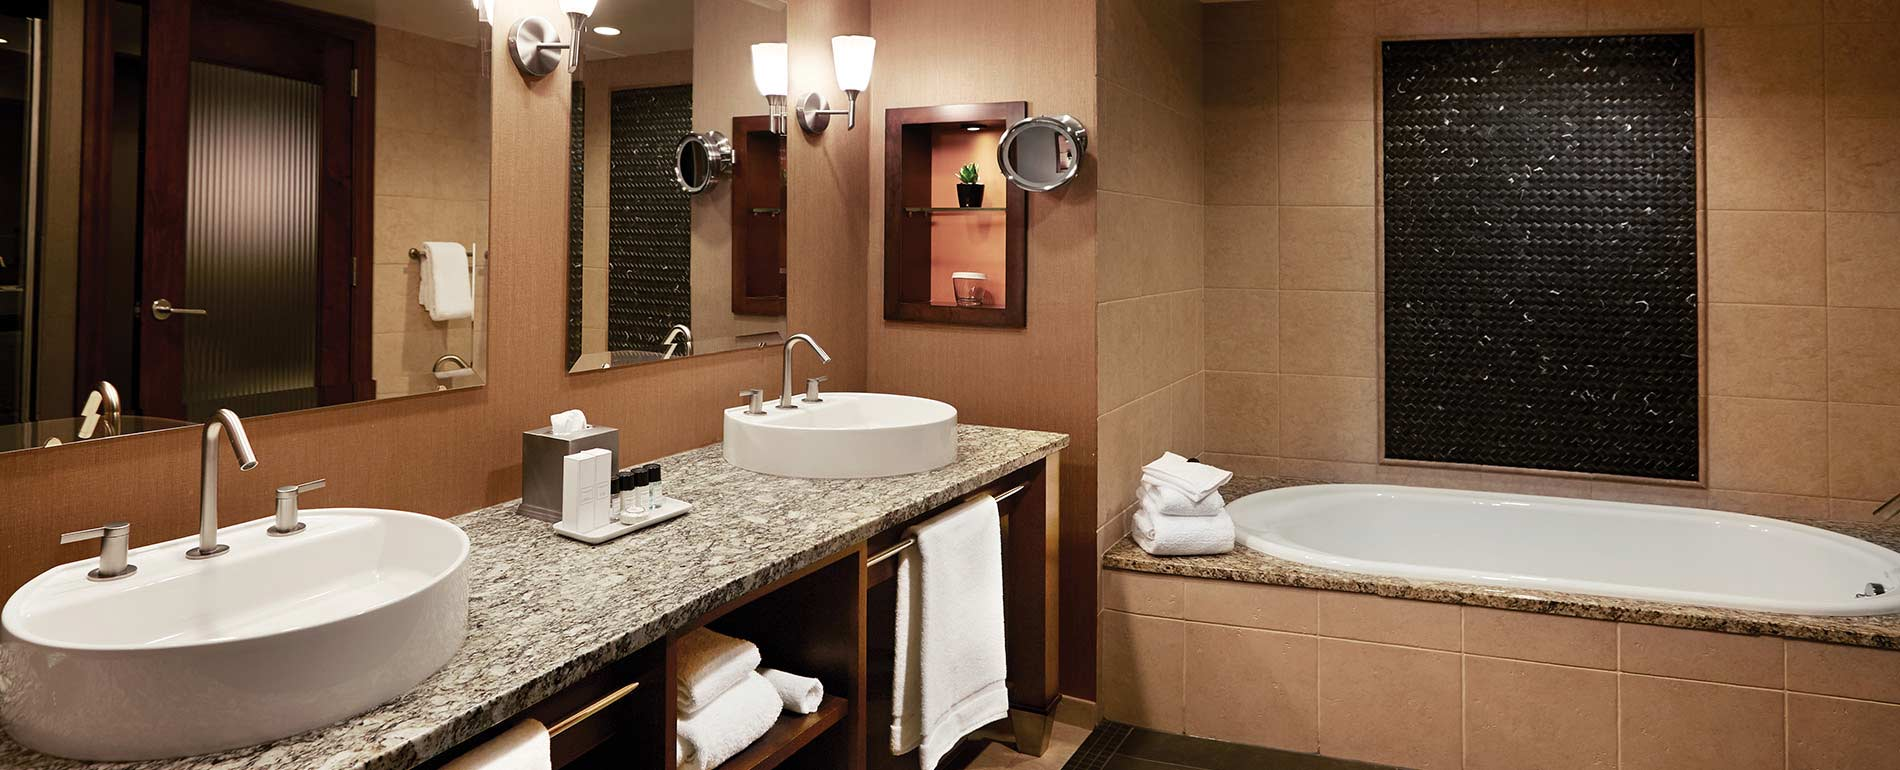 Poconos Resorts Pa Suite bathroom